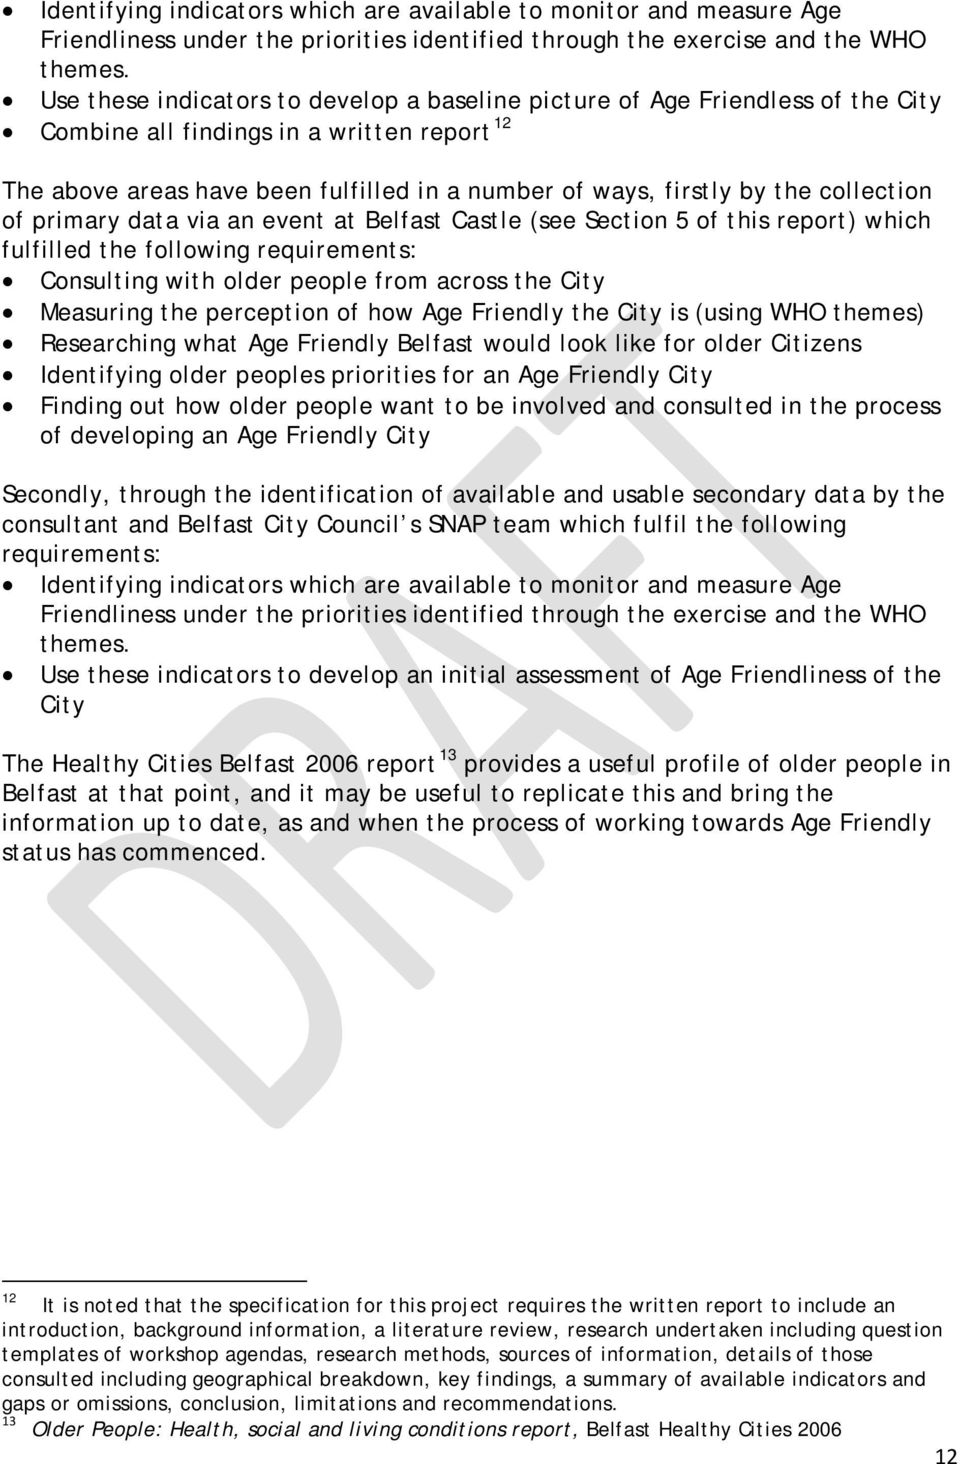 collection of primary data via an event at Belfast Castle (see Section 5 of this report) which fulfilled the following requirements: Consulting with older people from across the City Measuring the